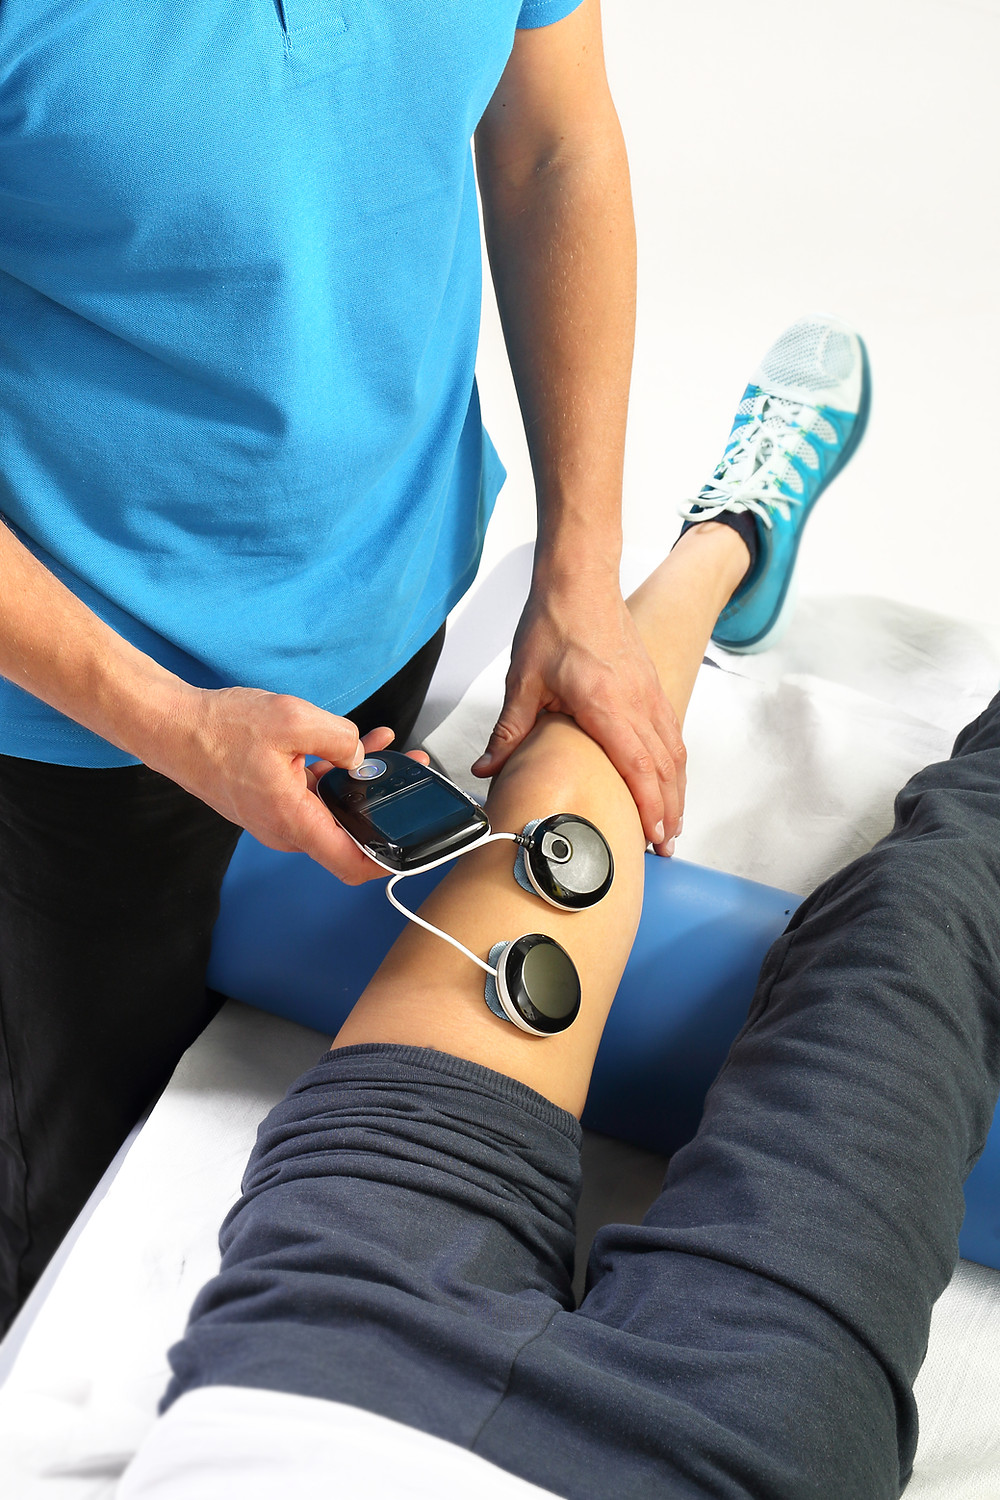 physio treatment minnie tang physio